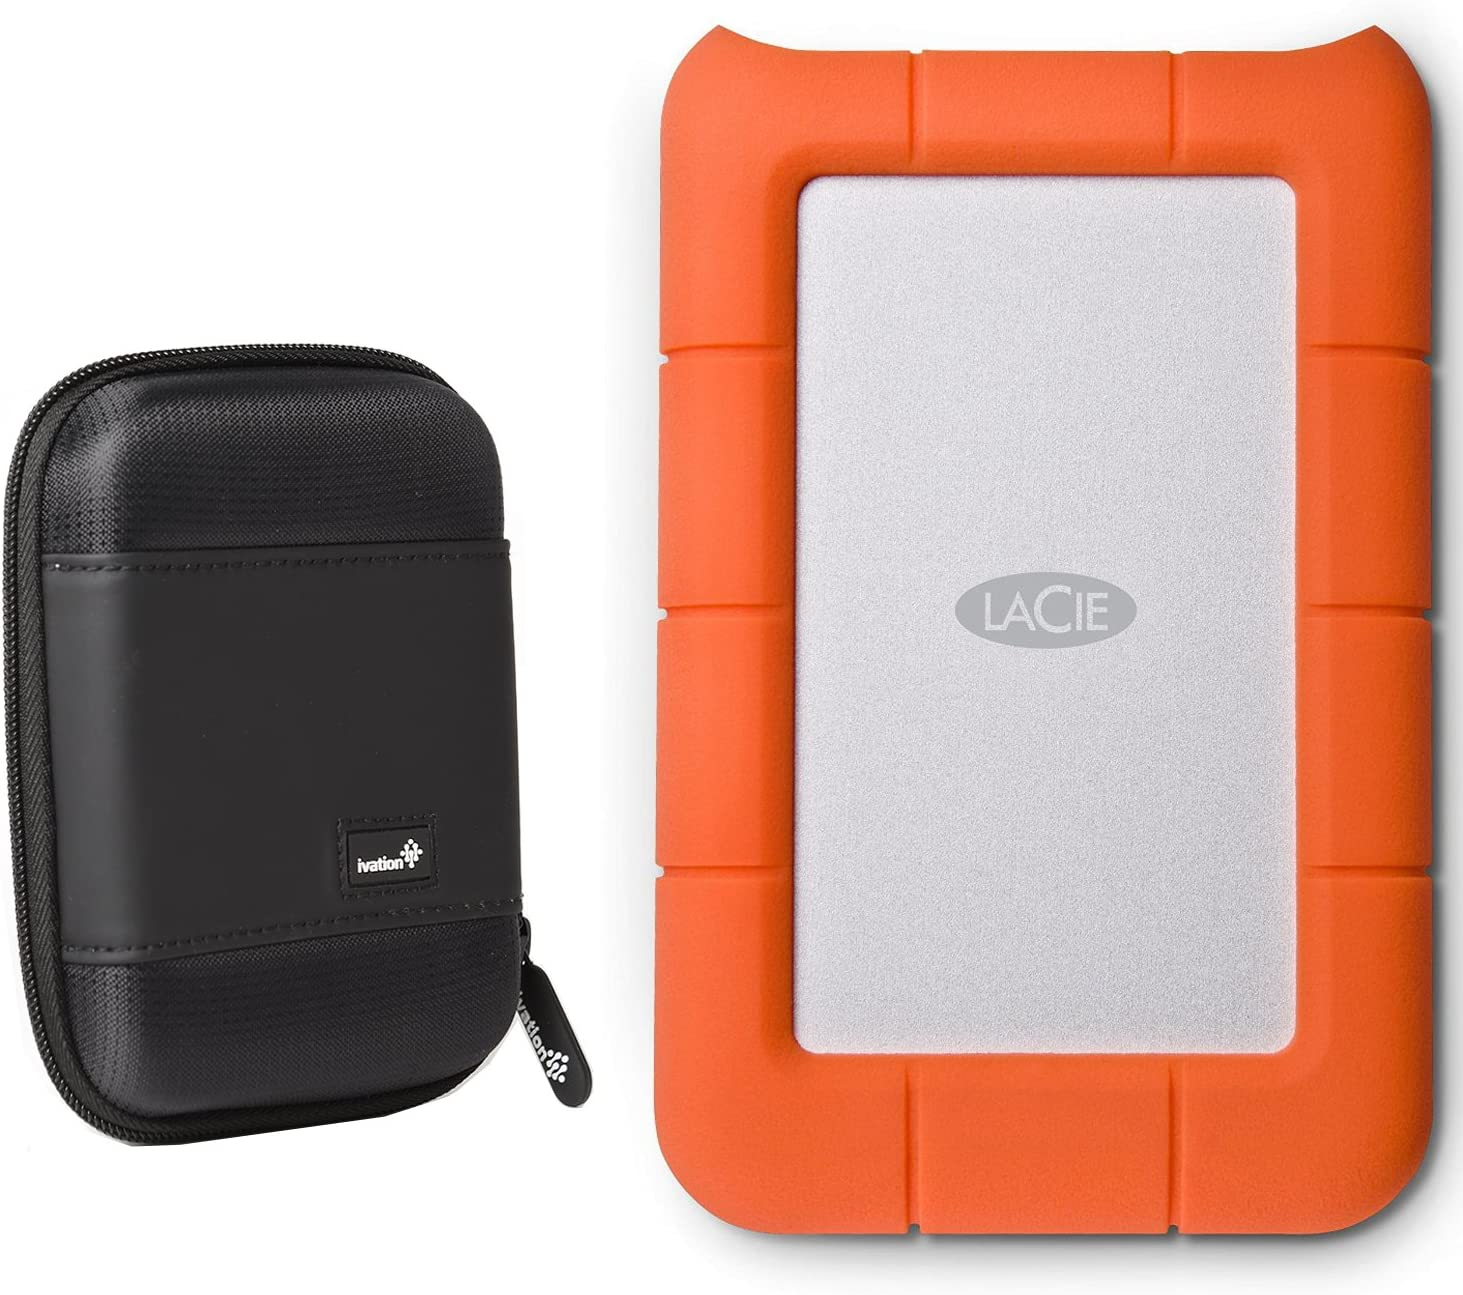 LaCie Rugged Mini USB 3.0 / USB 2.0 1TB External Mobile Hard Drive 301558 with Ivation Compact Portable Hard Drive Case